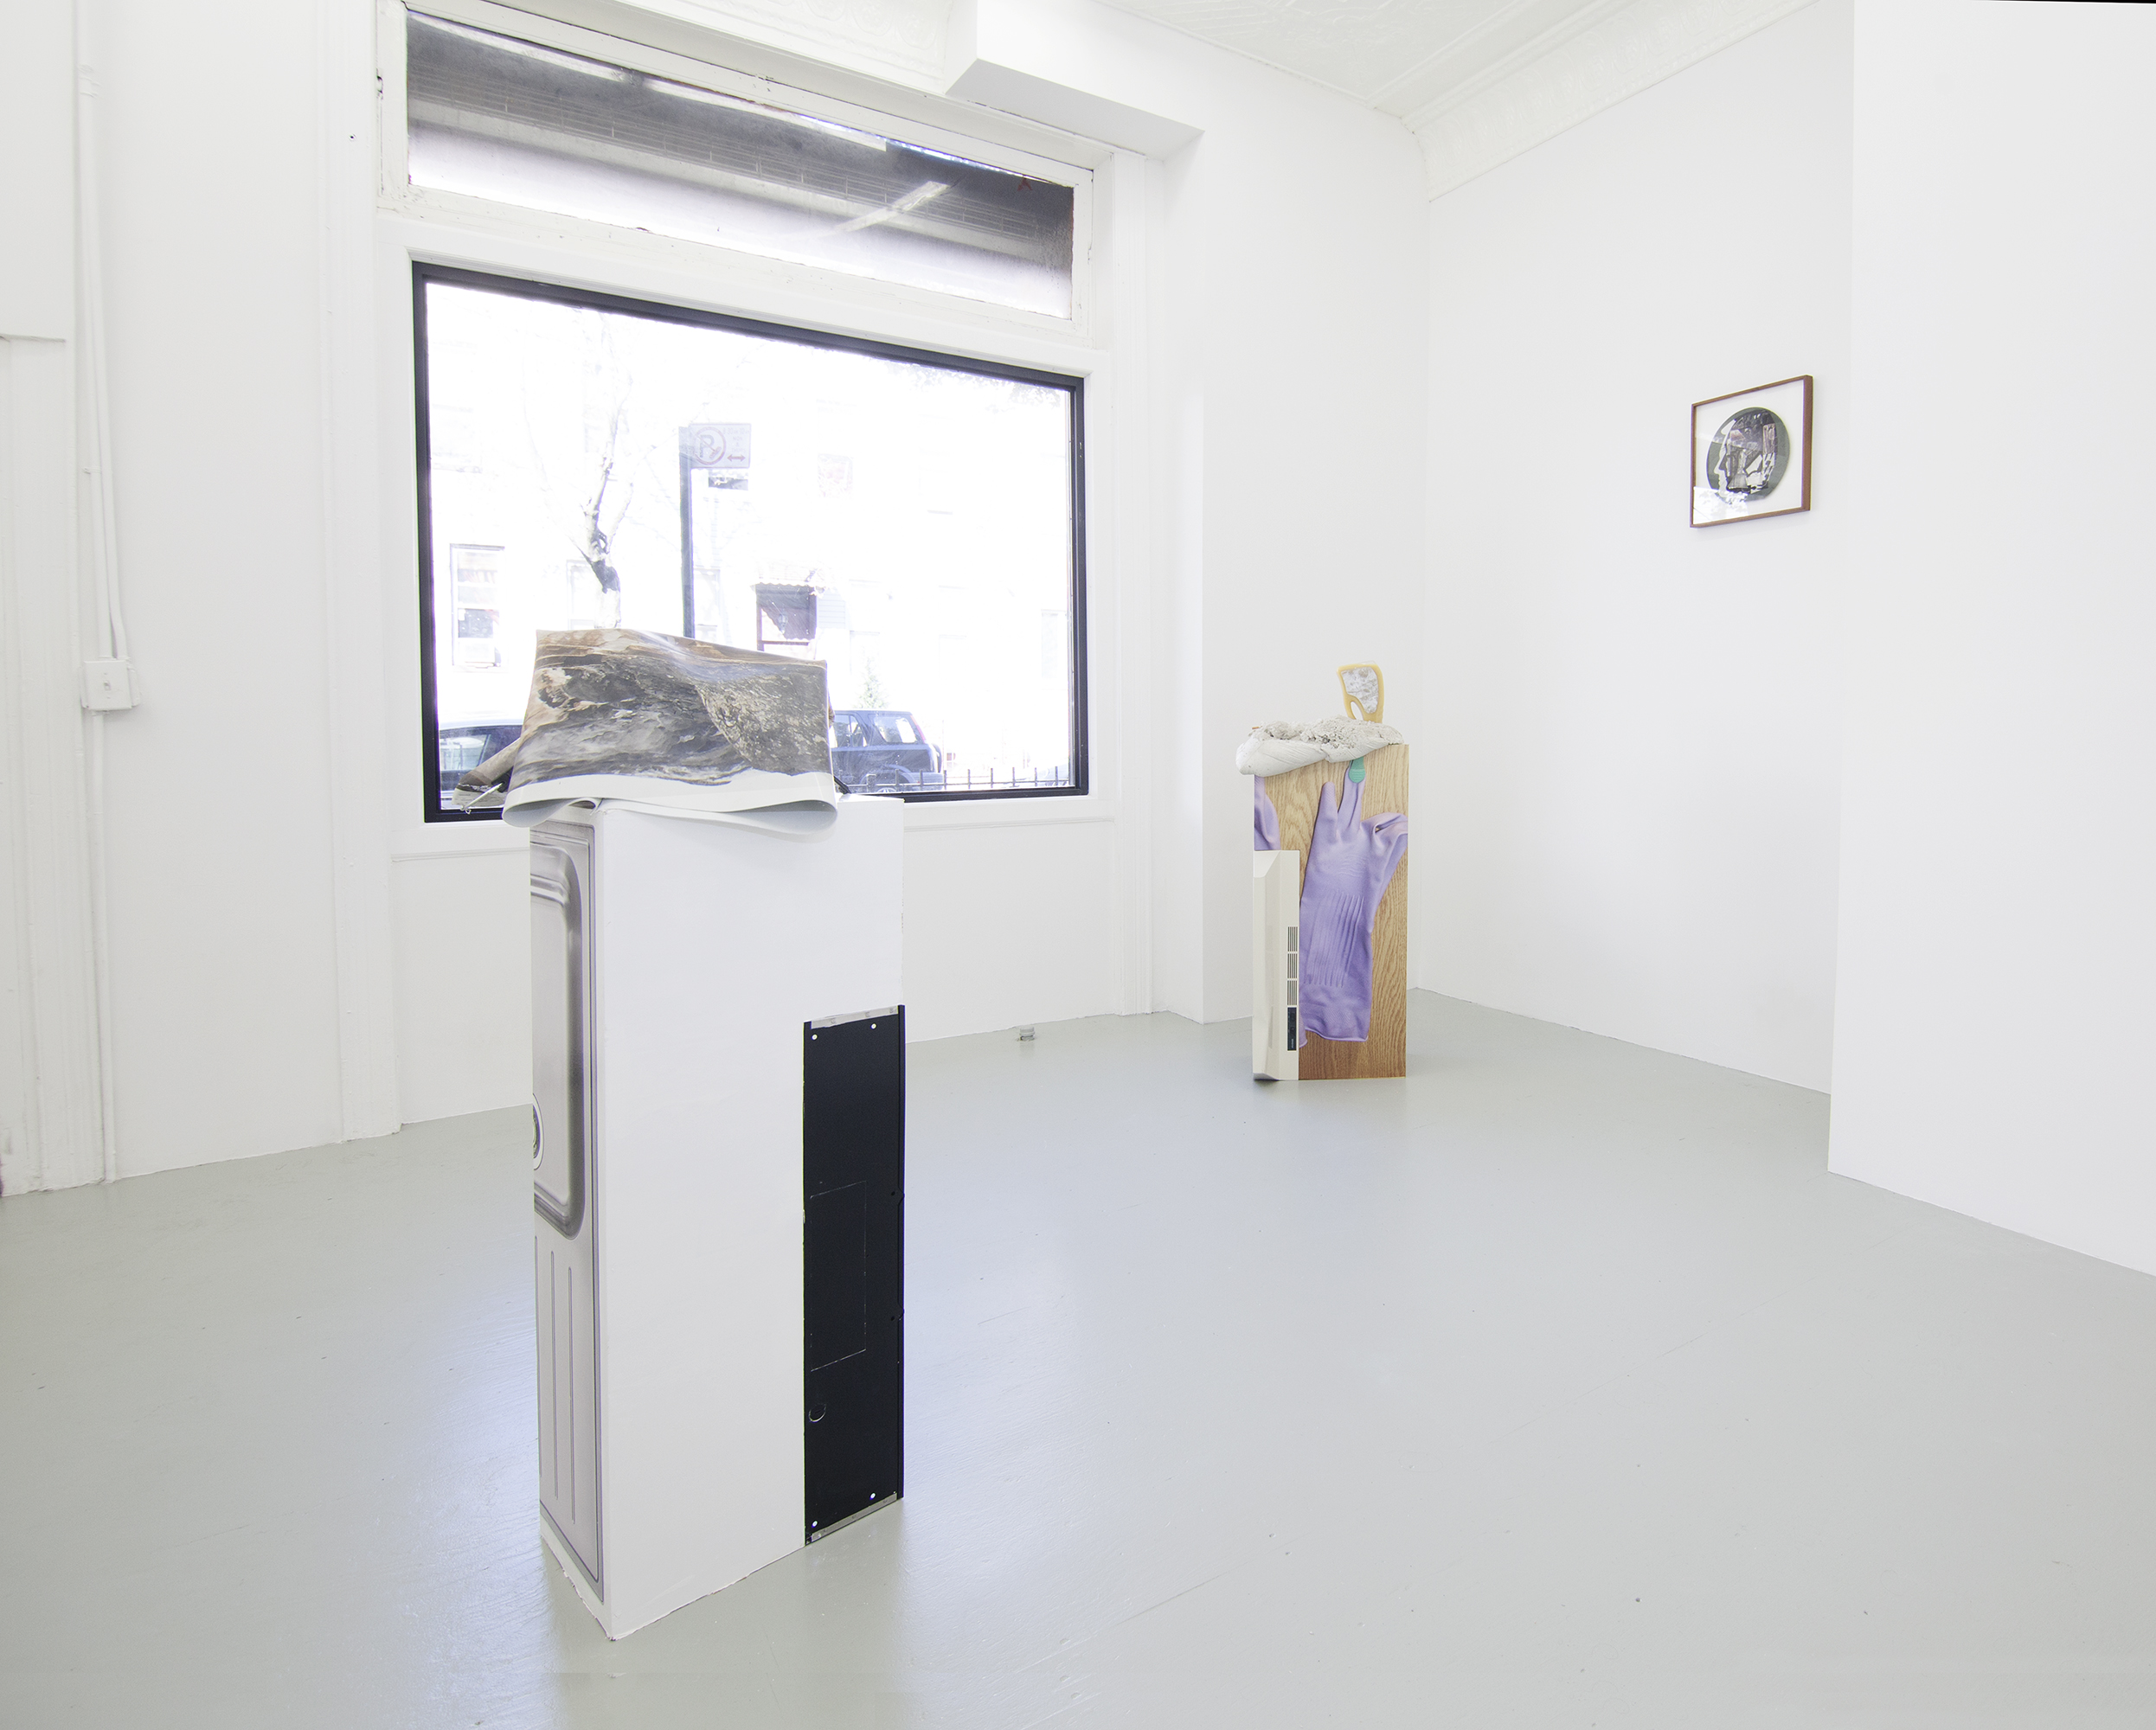 Umpawaug' s Bloom,  Installation View, 2015